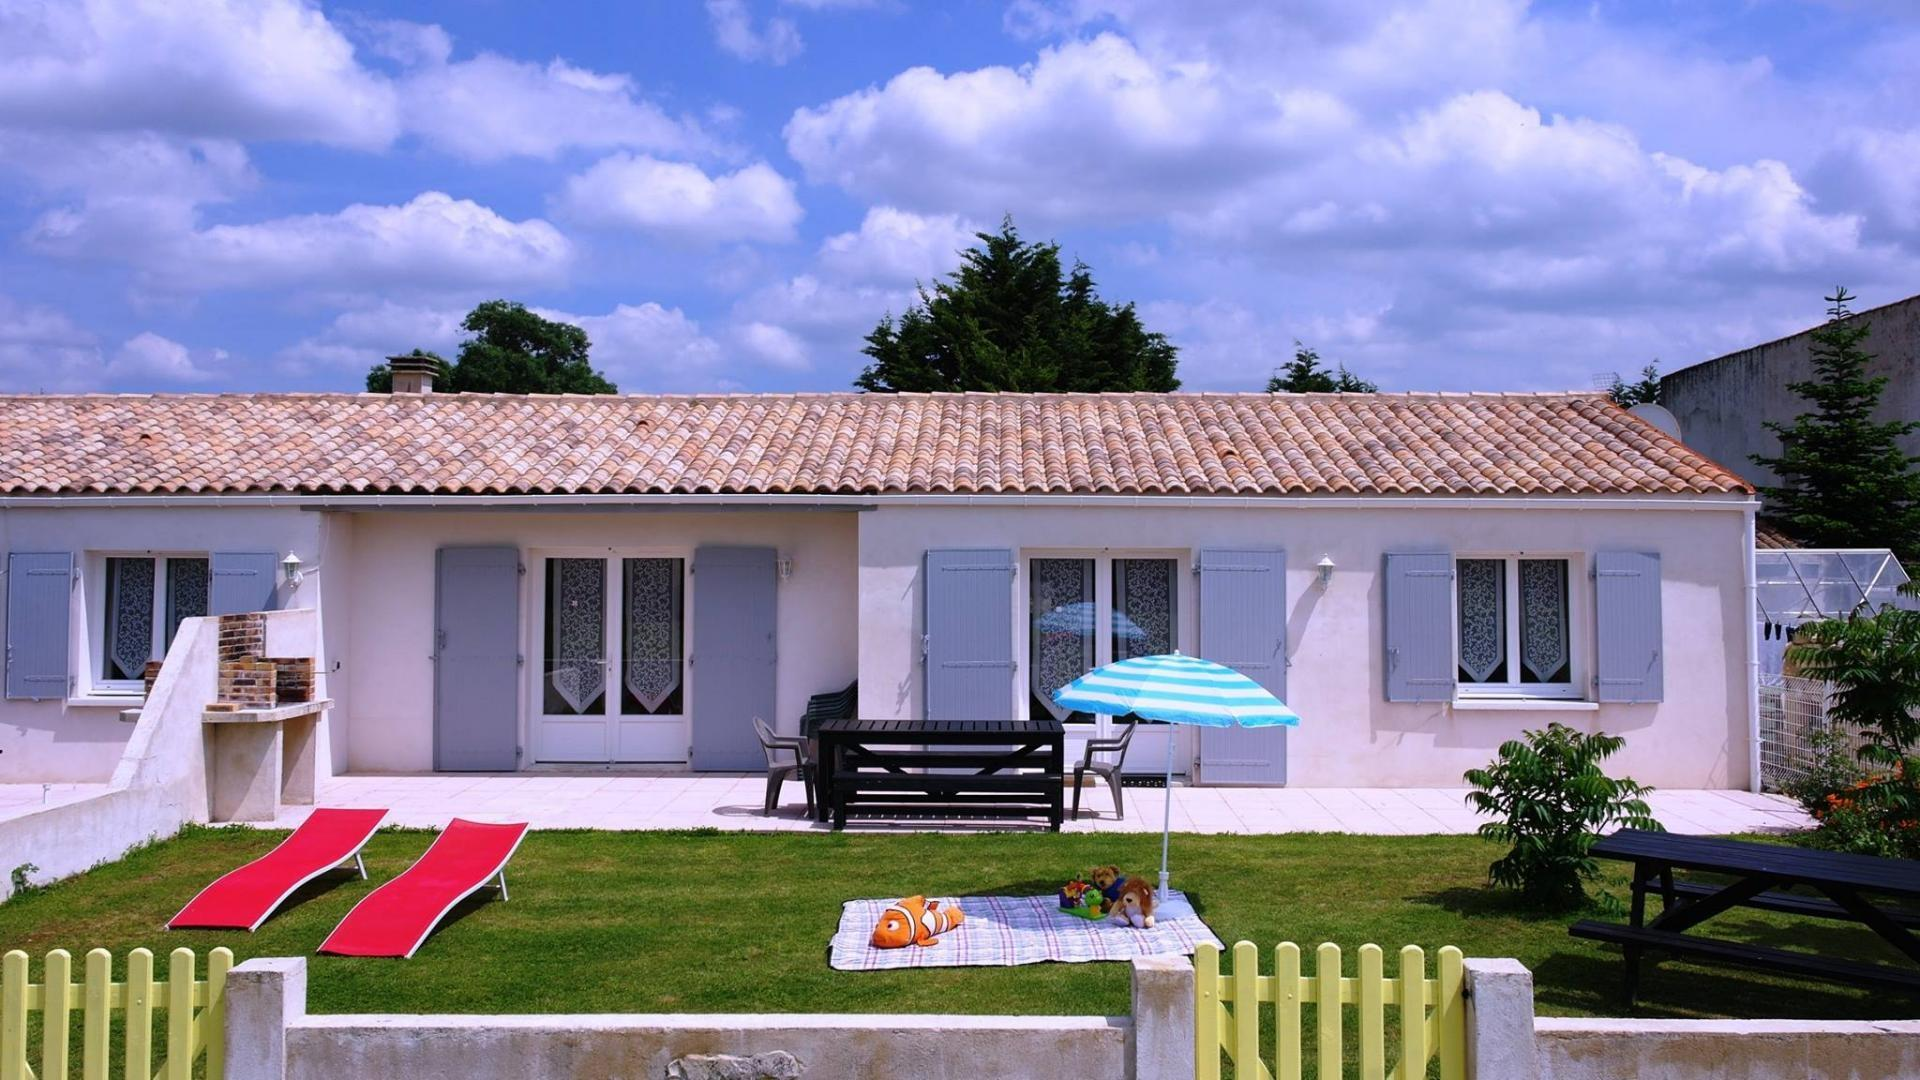 3 bedroom child-friendly holiday cottage near Rochelle France